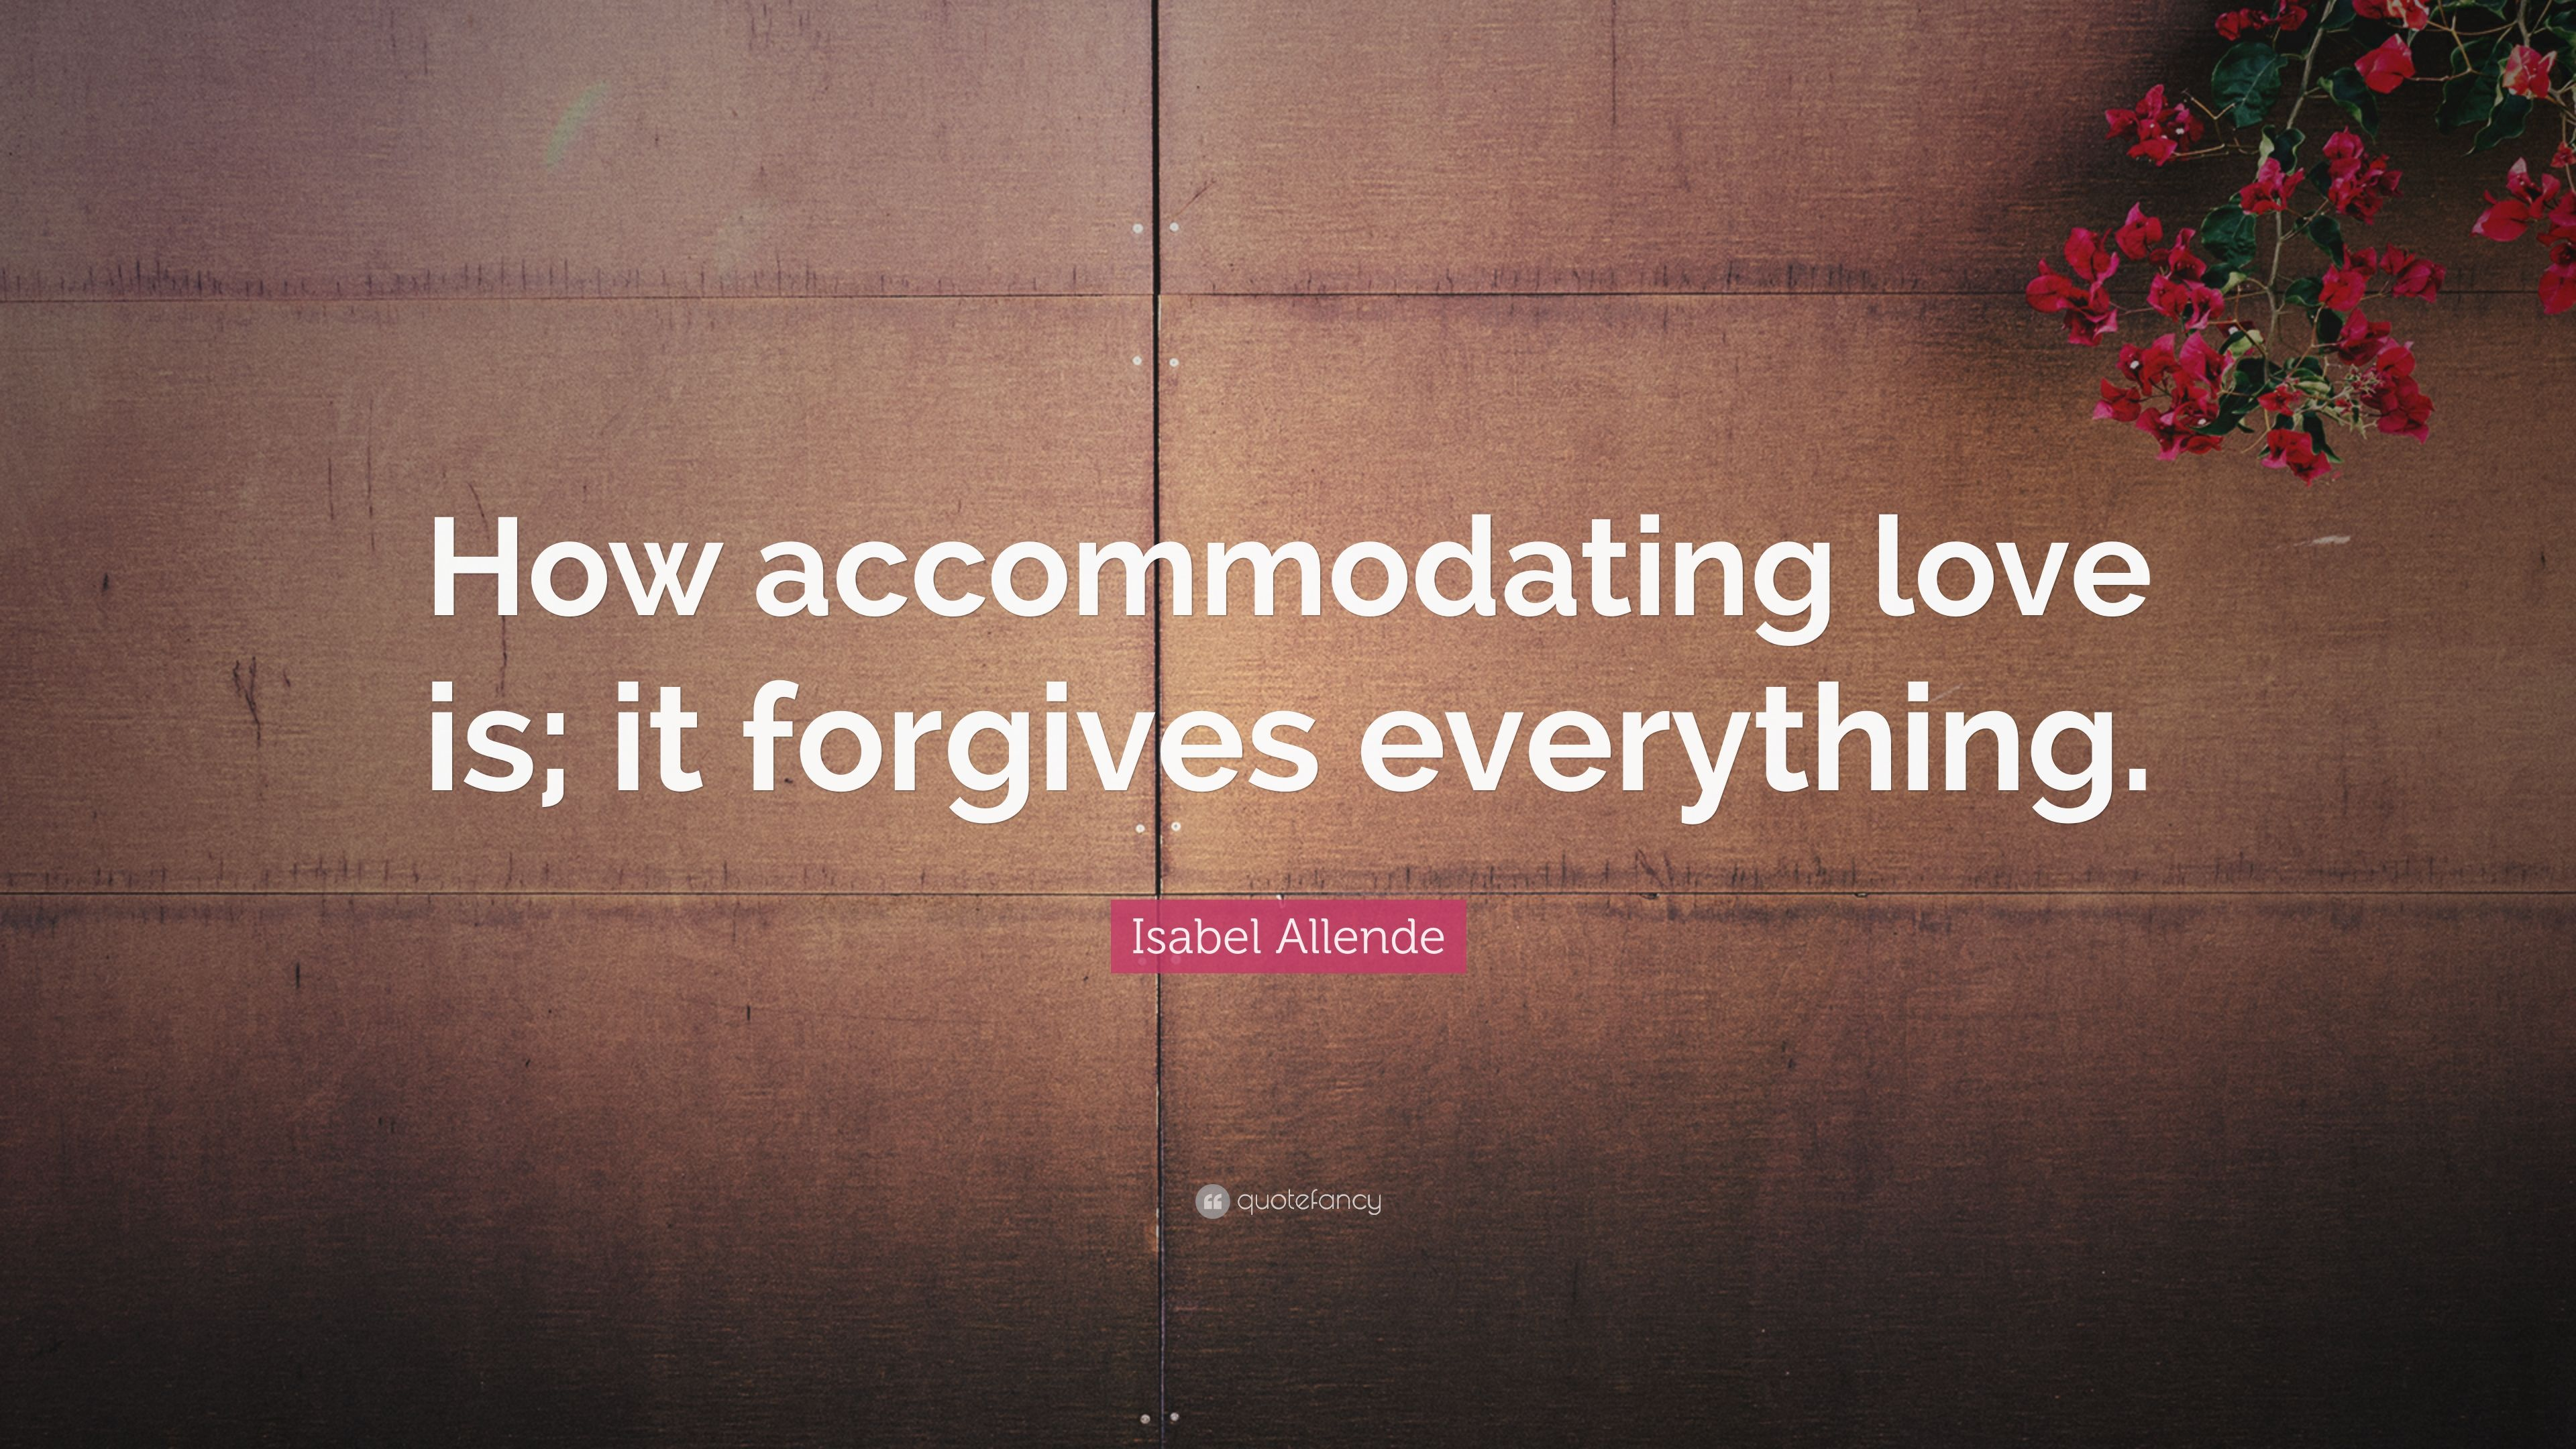 Accommodating quotes about life